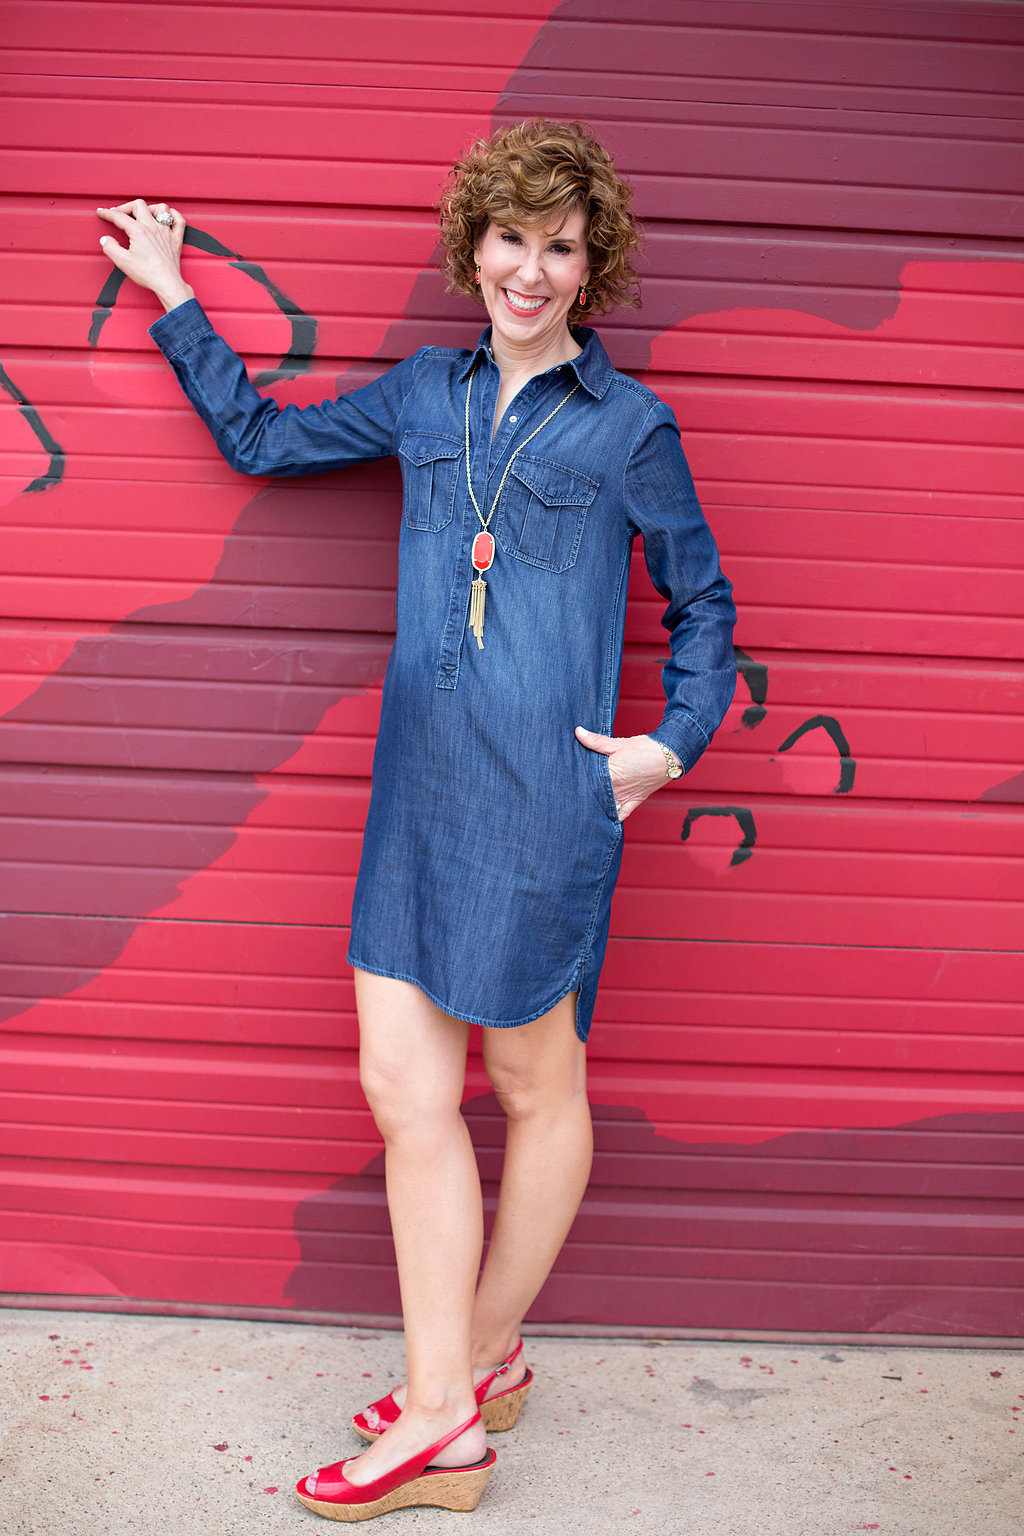 style a shirtdress, how to style a shirtdress, ways to style a shirtdress, style a shirt dress, how to style a shirt dress, ways to style a shirt dress, shirt dress, shirtdress, shirtdress looks, shirt dress looks, shirtdress styles, shirtdress looks, shirt dress looks, shirtdress style inspo, shirt dress style inspo, shirtdresses, how to wear shirt dresses shirt dresses, how to wear shirtdresses, j crew factory shirtdress, jcrew factory shirtdress, olive green shirtdress, green shirtdress, olive green dress, olive green shirt dress, sannibel wedges, gold tassel necklace, simple gold tassel necklace, straw circle bag, circle bag, rattan circle bag, inexpensive rattan circle bag, tory burch logo earrings, gold tory burch logo earrings